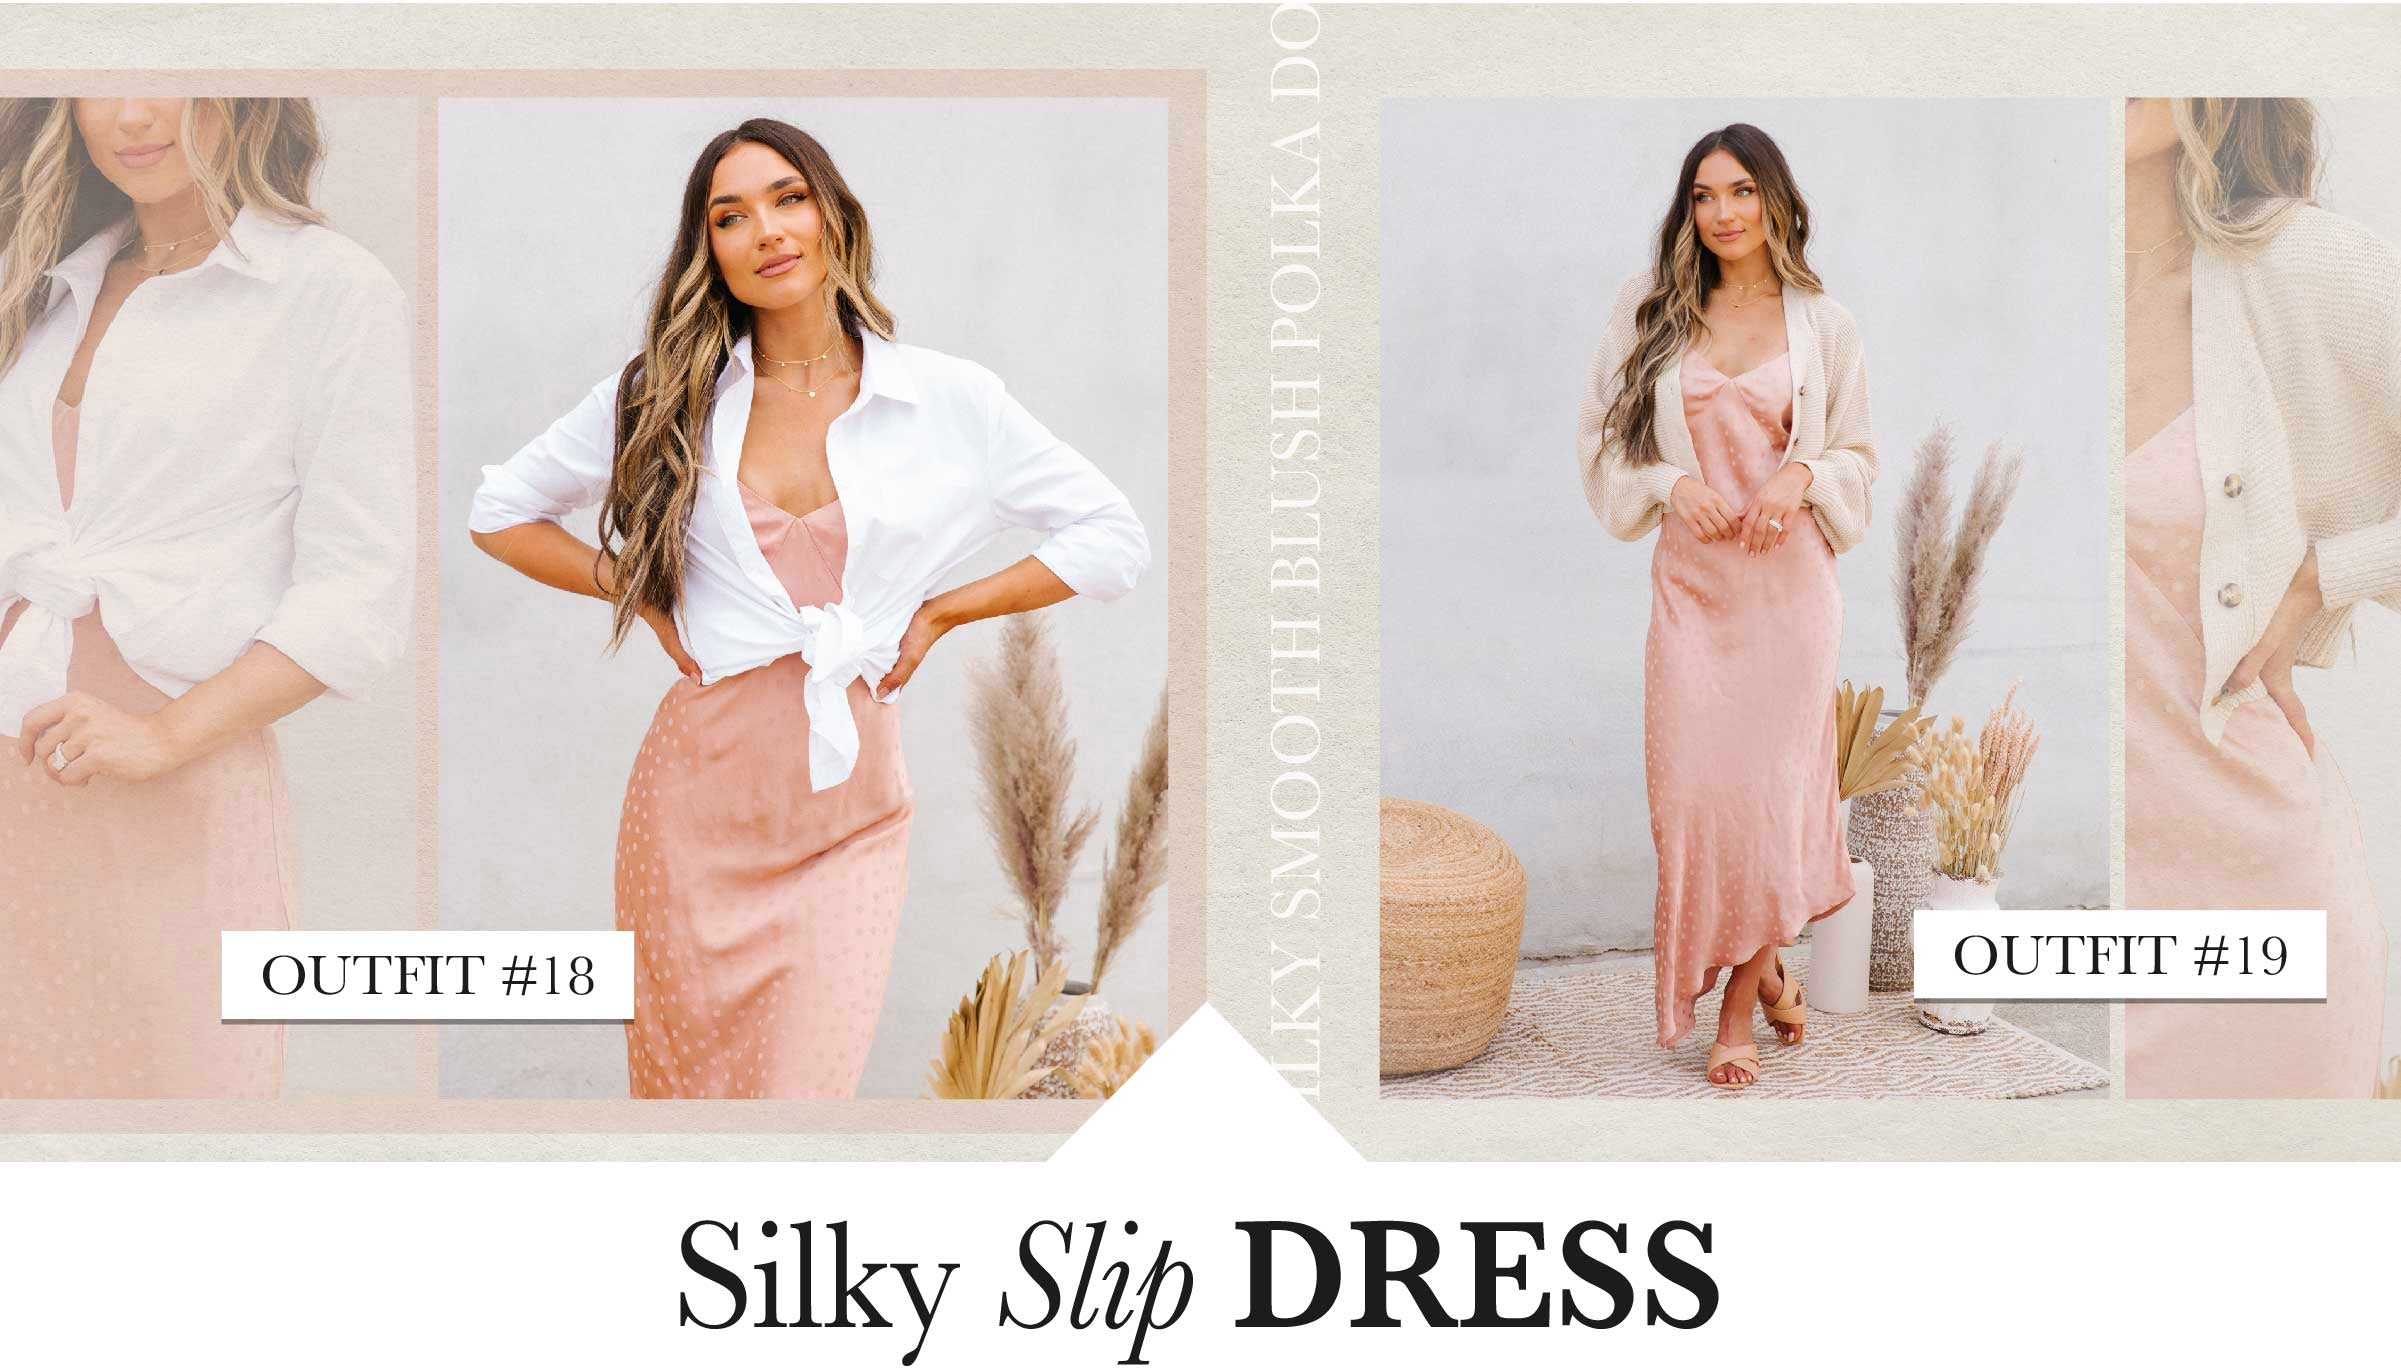 Say goodbye to stuffy and suffocating clothes as the weather heats up!  We adore the breathability of a  lightweight slip dress. This barely-there beauty will hardly take up any space in your suitcase. Wear it to an outdoor wedding paired with kitten heels, or shopping around town paired with casual sandals. She truly does it all!